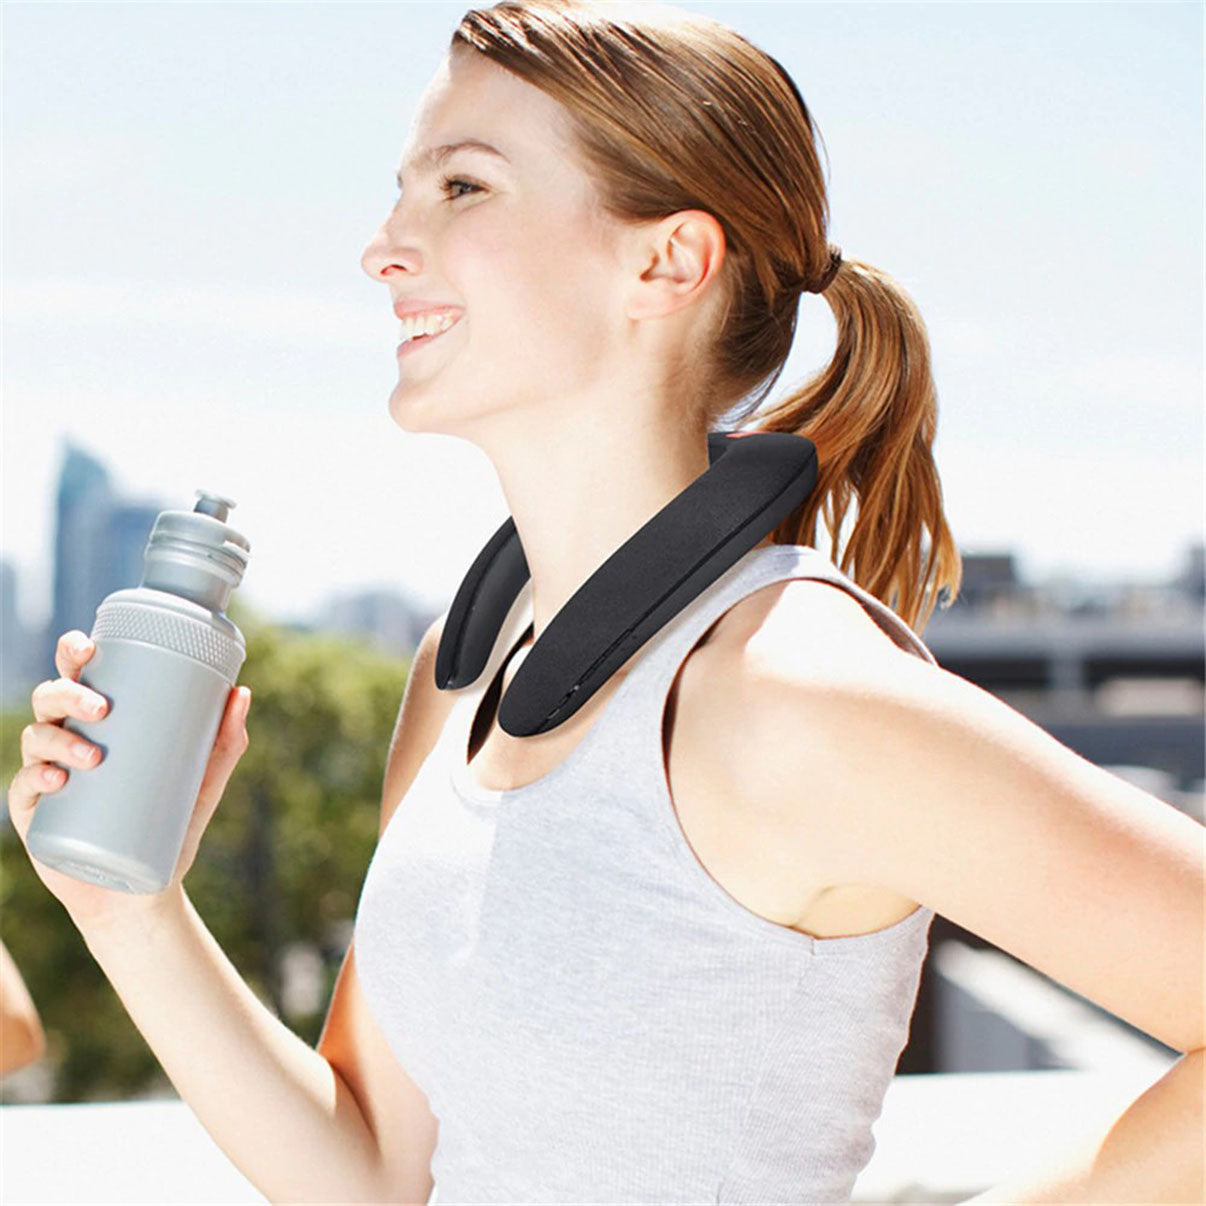 Wearable Neck Speakers for Sports & Outdoor